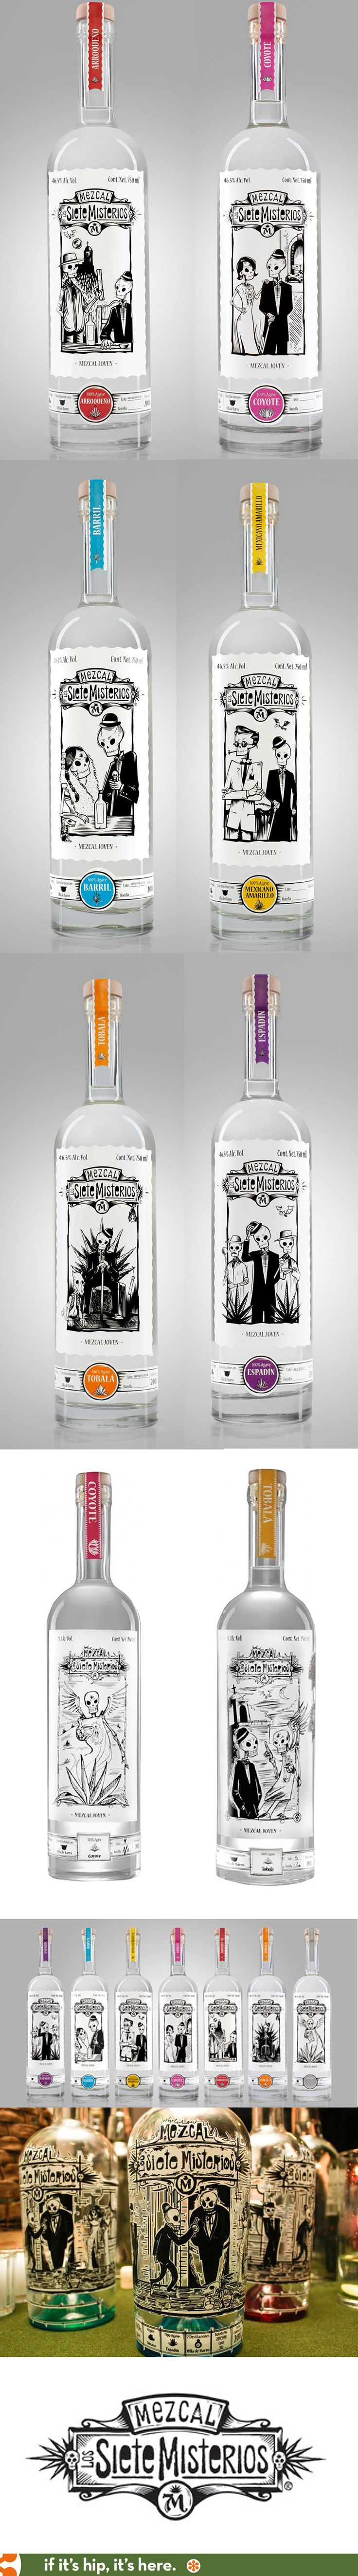 Siete Misterios Mezcal bottles have wonderful Day of The Dead inspired labels PD